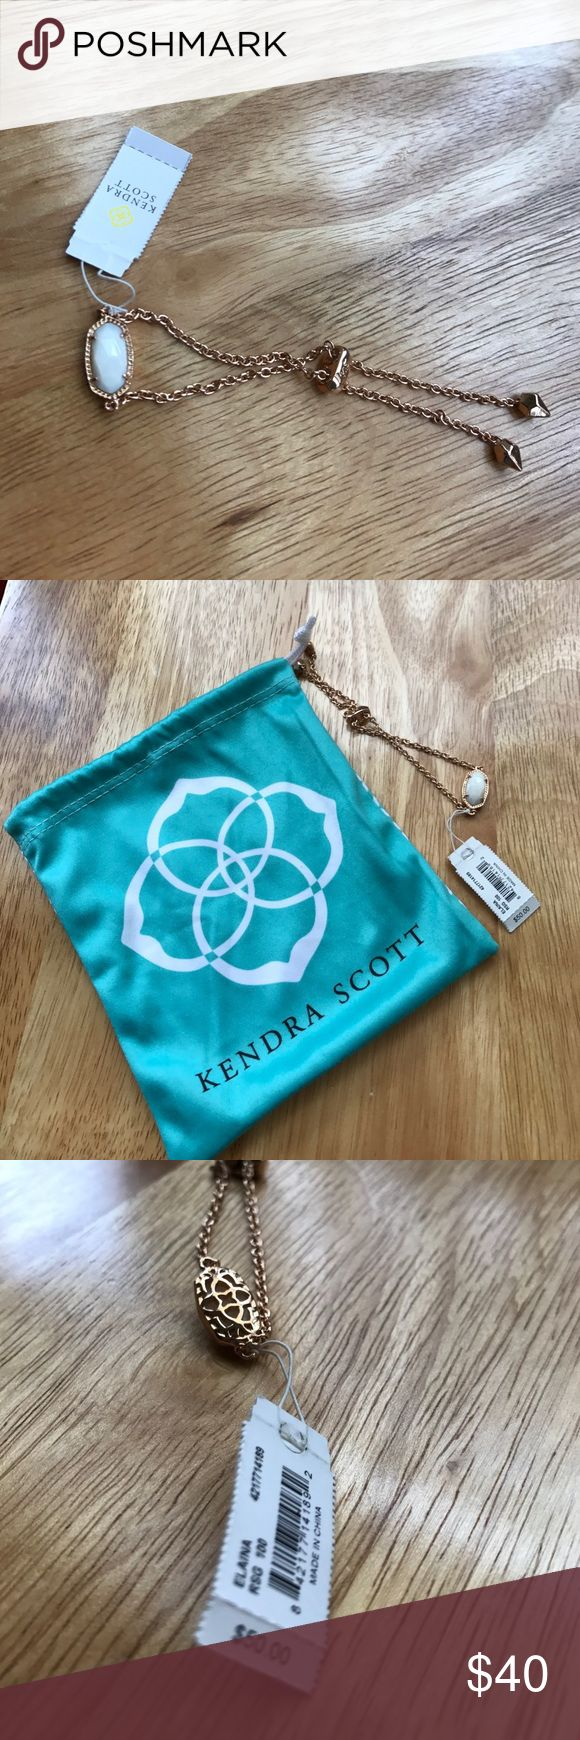 Kendra Scott Adjustable Bracelet Brand new w/ tags and comes with the traveling bag Kendra Scott Jewelry Bracelets